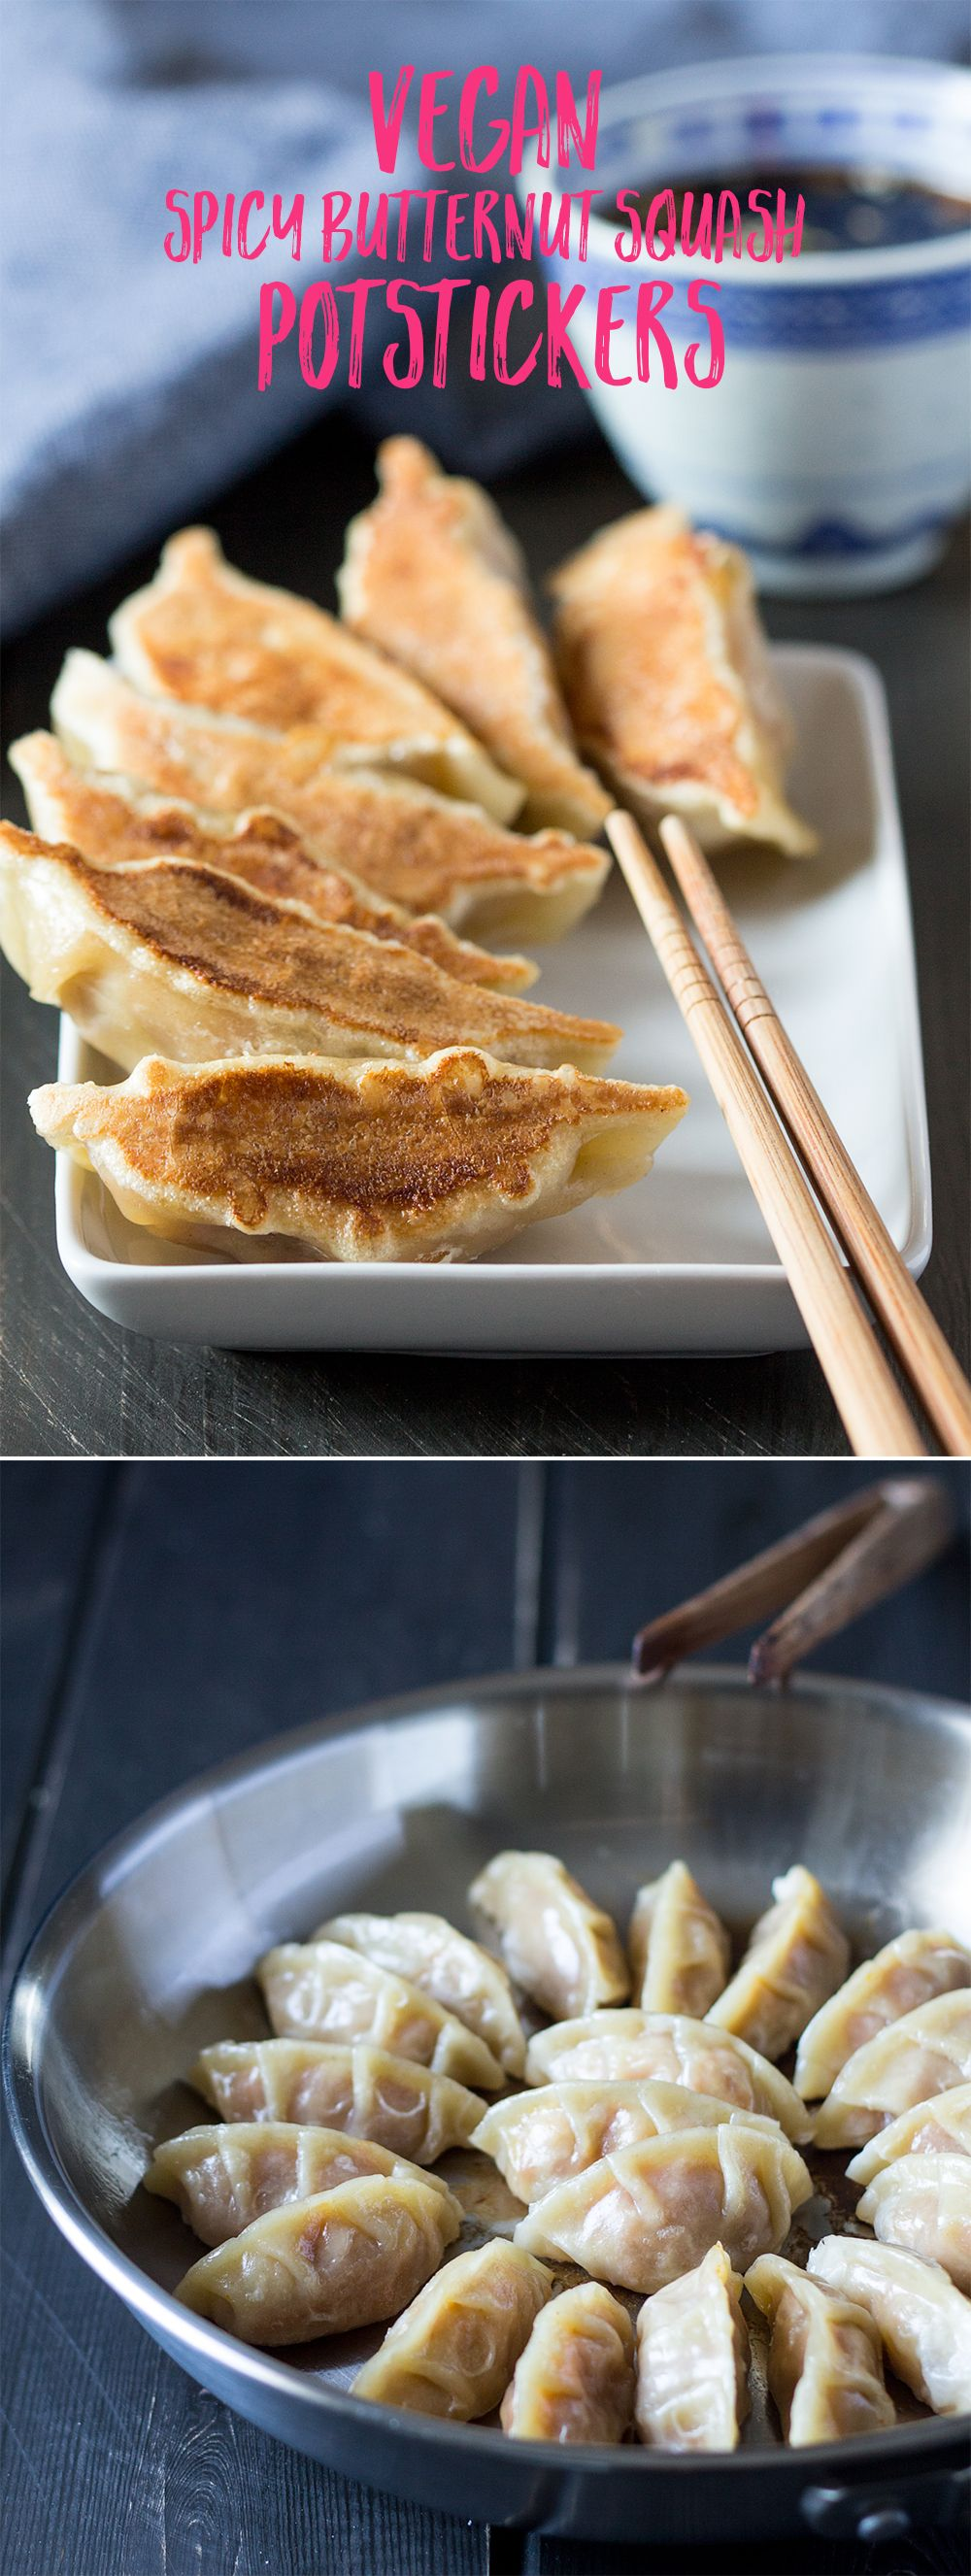 Spicy Butternut Squash Dumplings